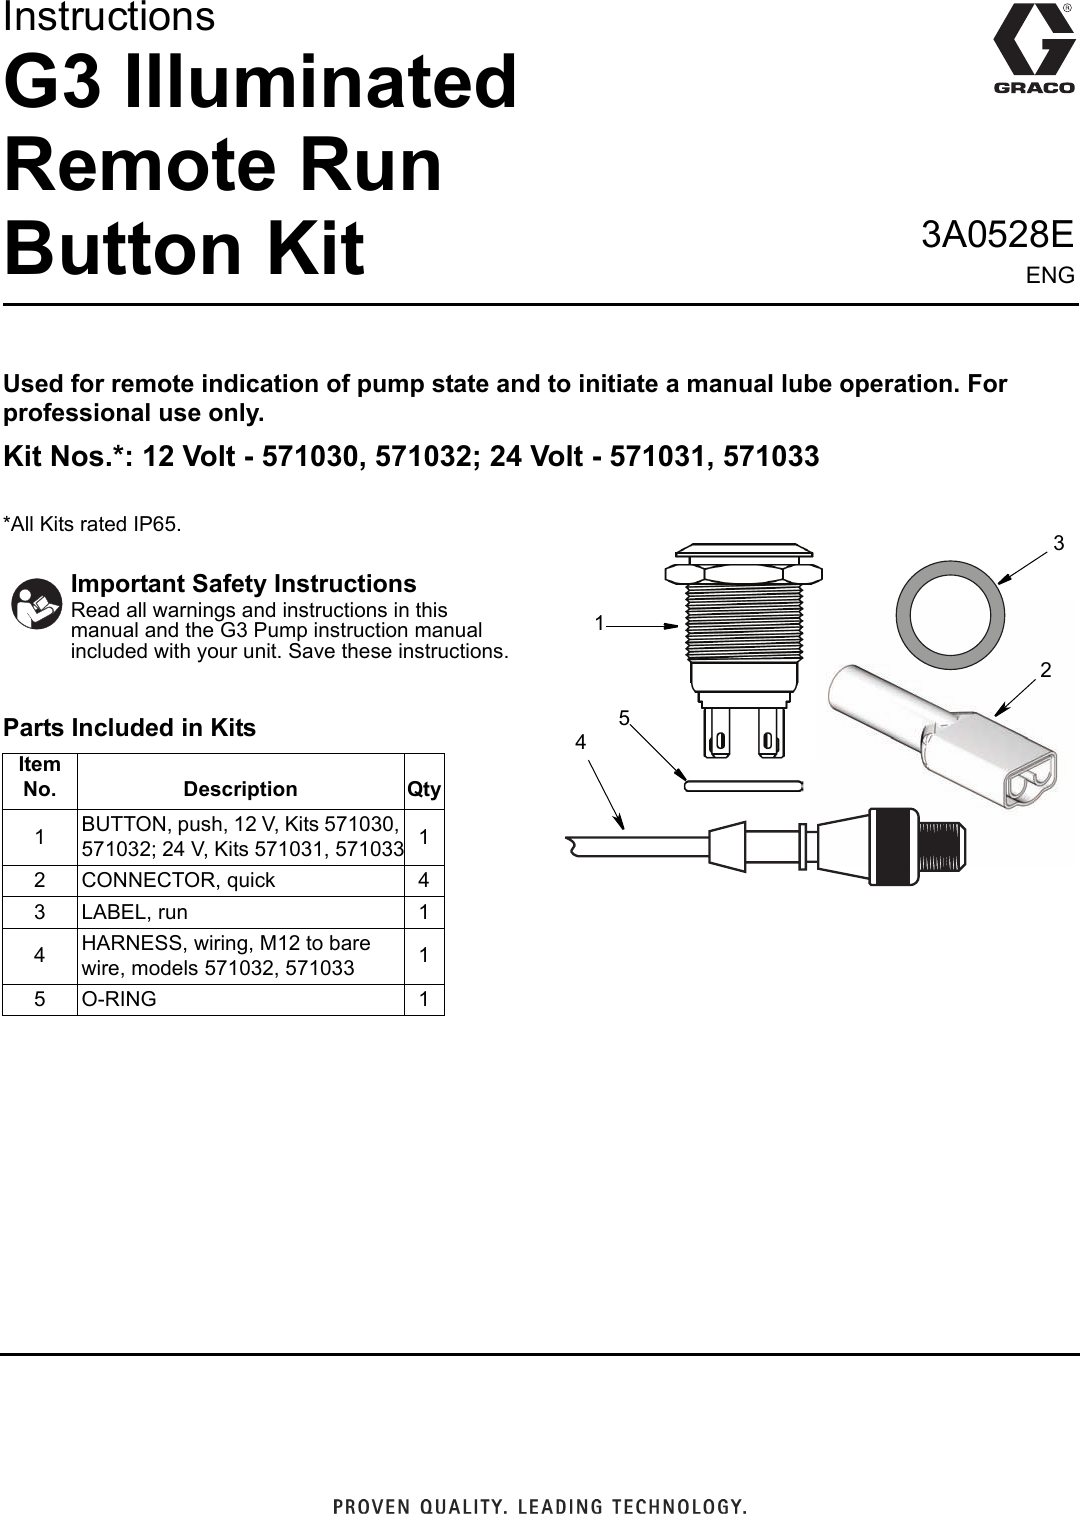 Graco 3a0528e G3 Illuminated Remote Run Kit Users Manual Wiring Diagram Instructions English